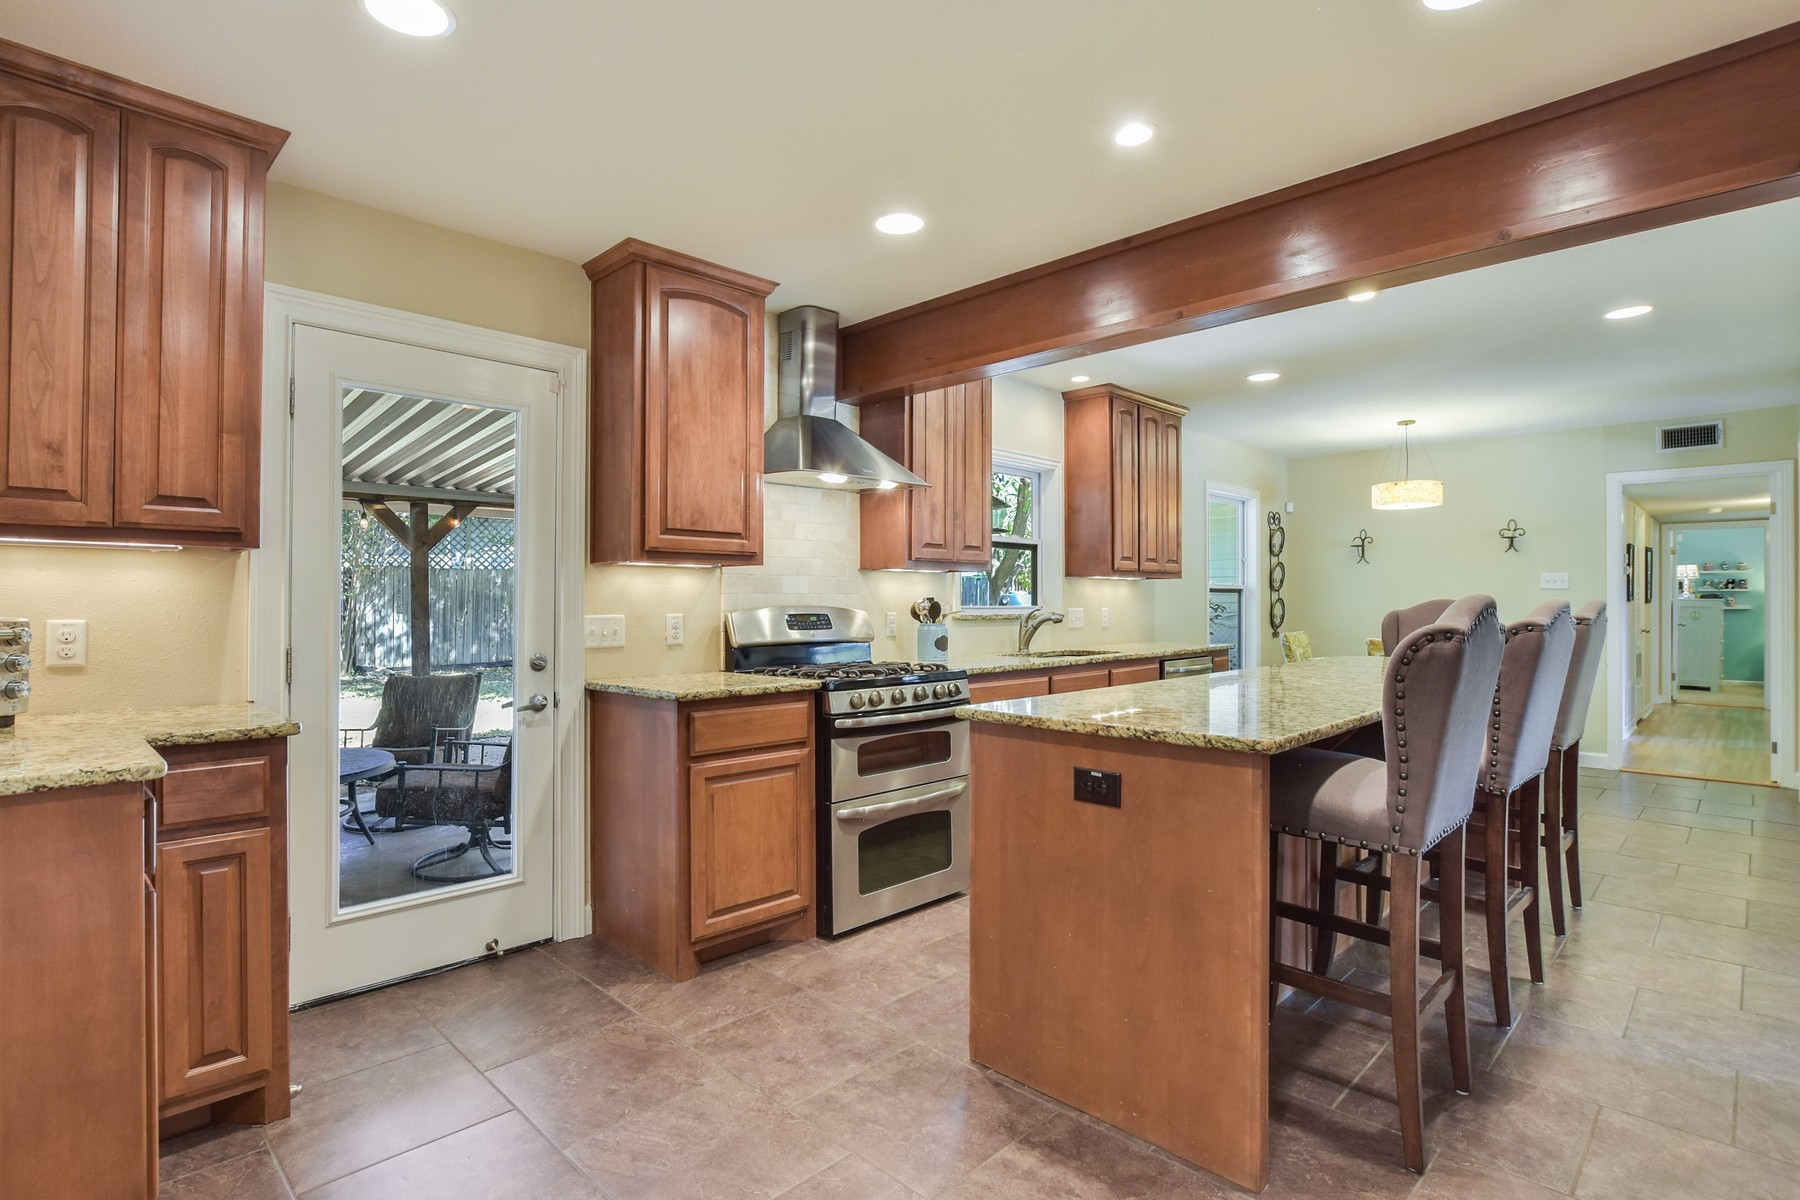 Additional photo for property listing at Wonderful Home on Corner Lot in Allandale 2500 Twin Oaks Dr Austin, Texas 78757 United States